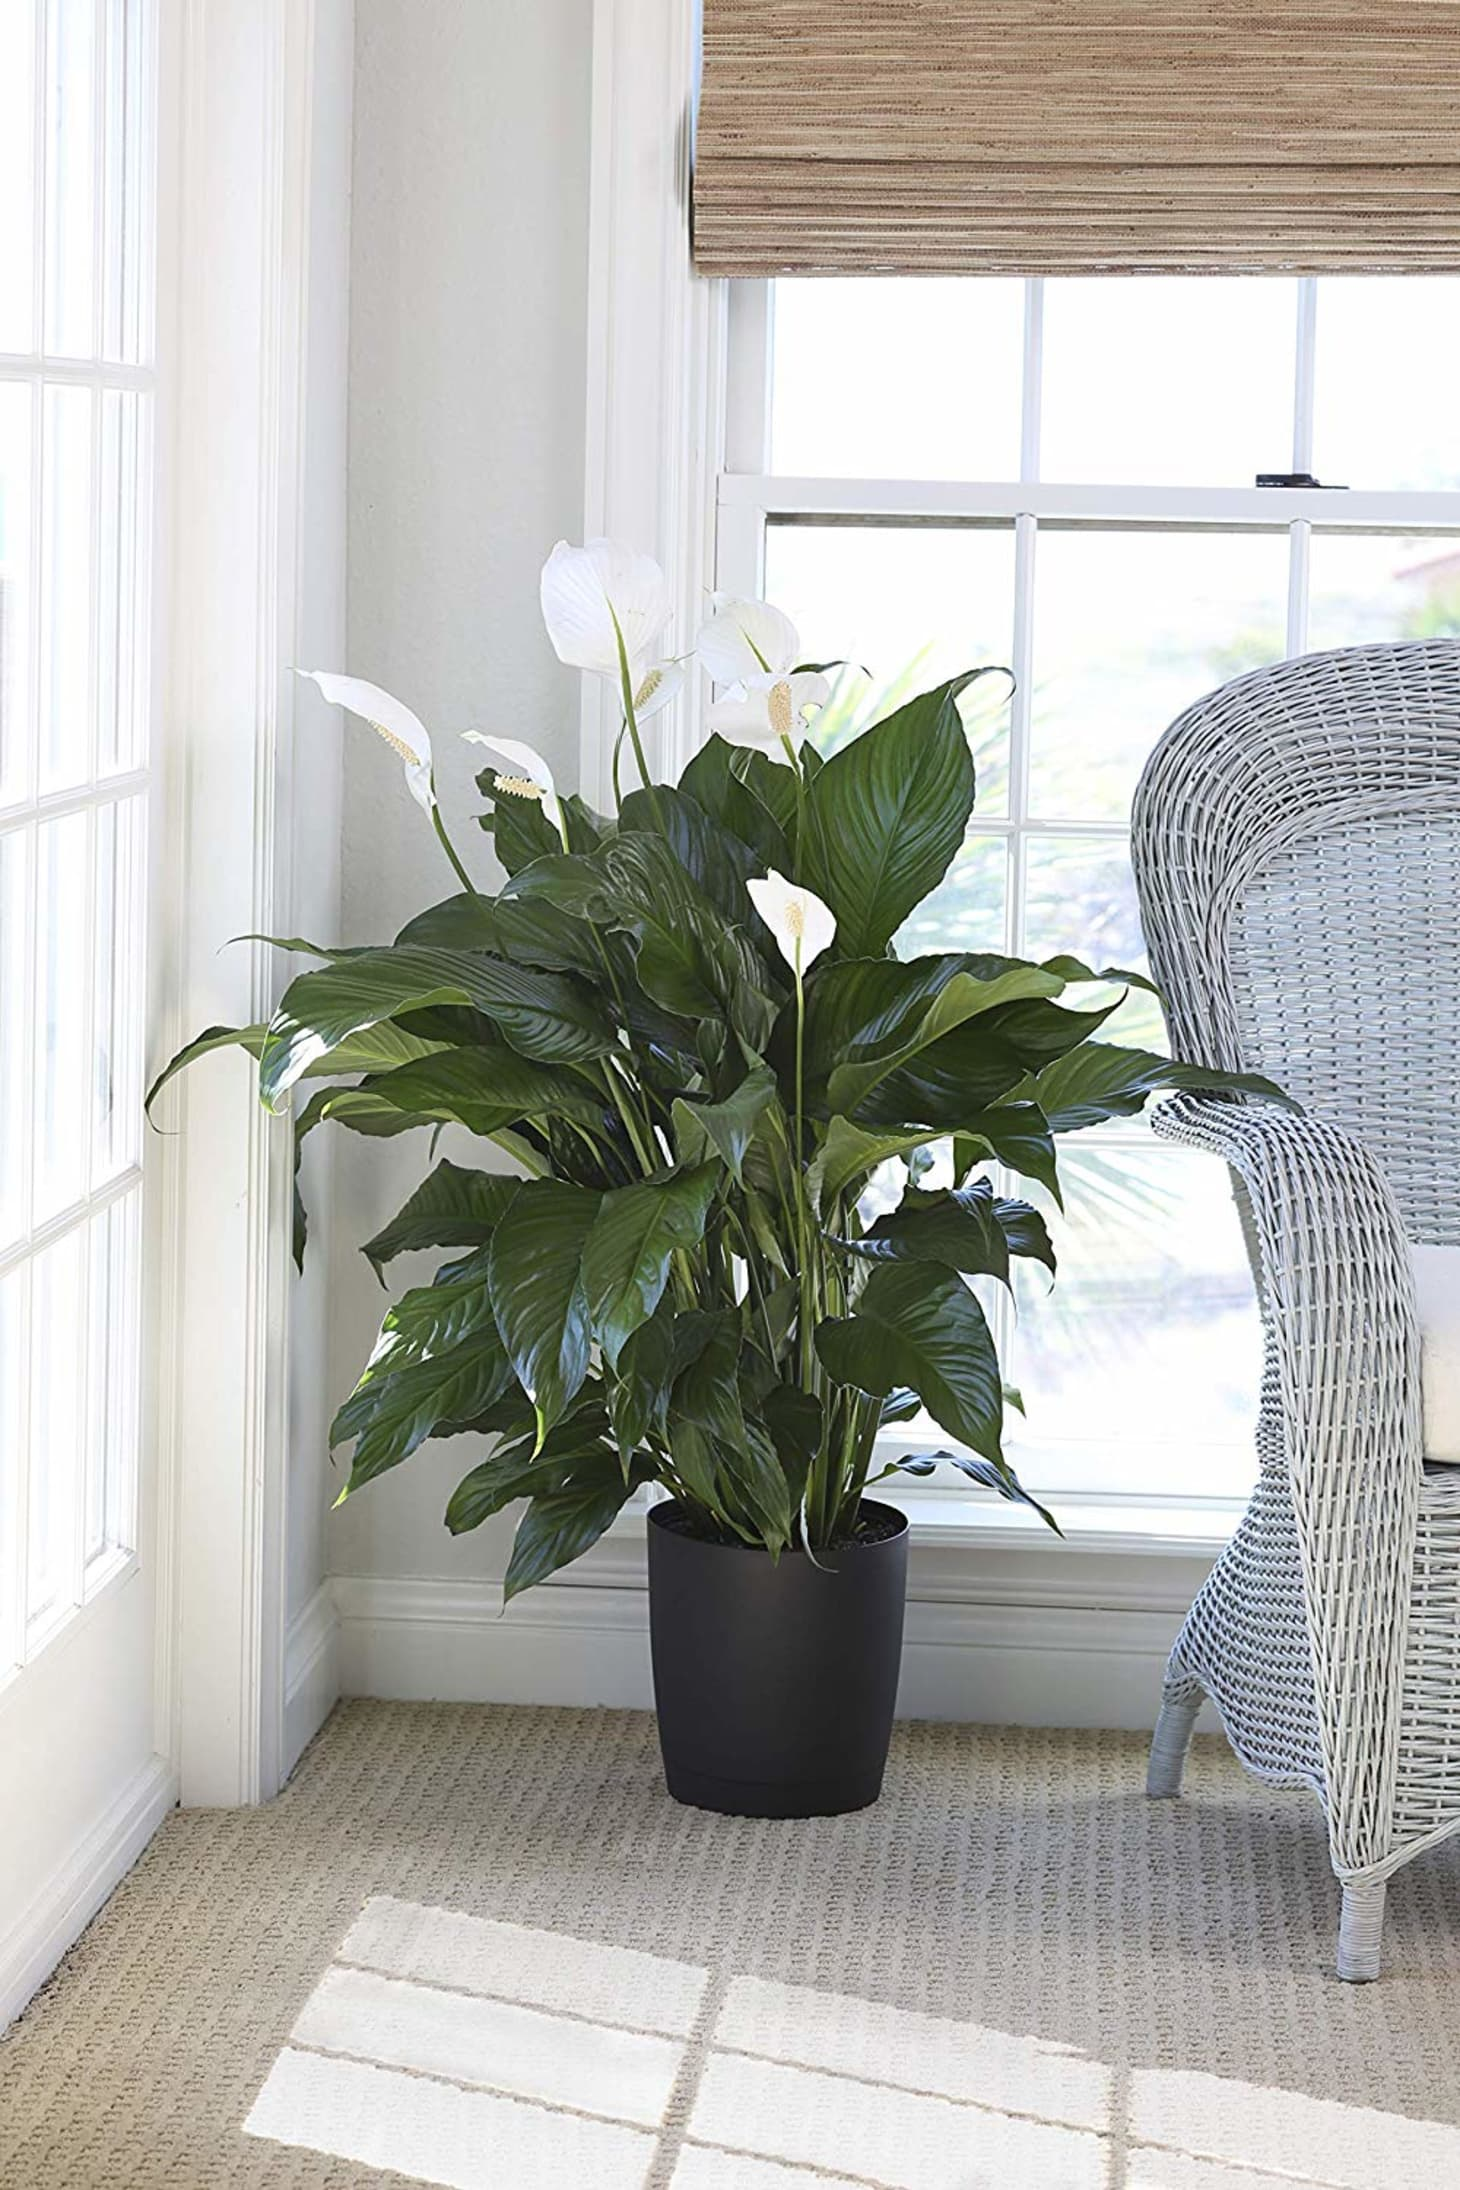 Amazon Is Having a Sale on Live Plants | Apartment Therapy